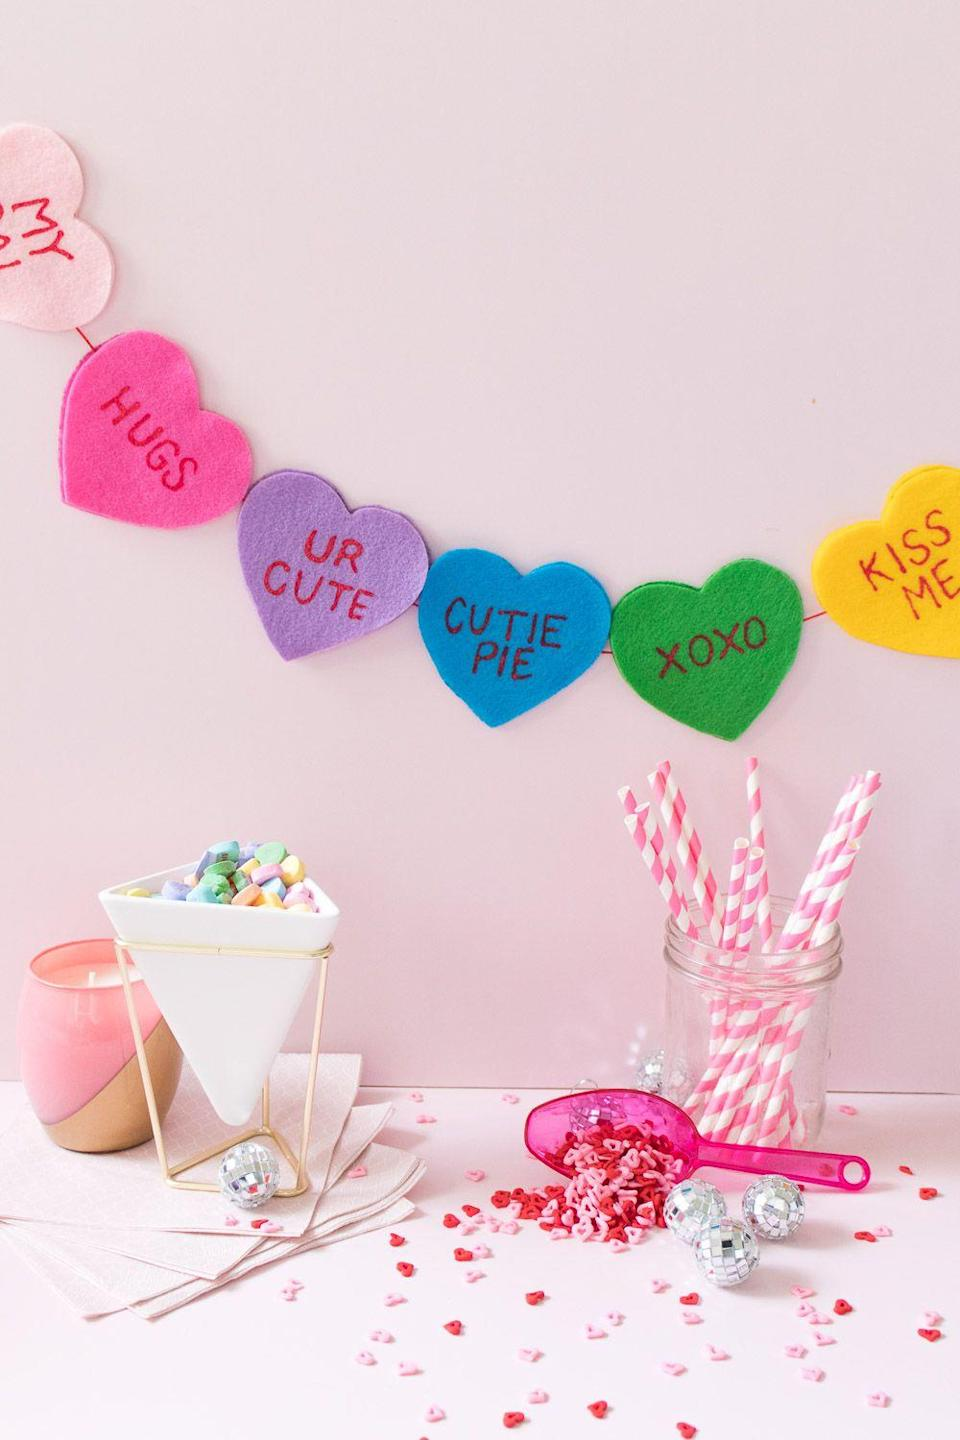 "<p>Sure, heart-shaped crafts are great for <a href=""https://www.goodhousekeeping.com/holidays/valentines-day-ideas/g2020/easy-valentines-day-craft-ideas/"" rel=""nofollow noopener"" target=""_blank"" data-ylk=""slk:Valentine's Day"" class=""link rapid-noclick-resp"">Valentine's Day</a>. But the heart is a timeless symbol of love that can inspire cheerful DIYs all year long, too. These heart projects offer creative fun for all kinds of crafters, from kid-friendly ideas (even some for the toddler set), as well as more sophisticated projects for experienced DIYers. And many use simple, affordable supplies you may already have around the house. </p><p>These clever heart craft ideas include <a href=""https://www.goodhousekeeping.com/holidays/valentines-day-ideas/g30433059/kids-valentines-day-cards/"" rel=""nofollow noopener"" target=""_blank"" data-ylk=""slk:cards"" class=""link rapid-noclick-resp"">cards</a>, ornaments, <a href=""https://www.goodhousekeeping.com/holidays/valentines-day-ideas/g5101/last-minute-valentine-day-gifts/"" rel=""nofollow noopener"" target=""_blank"" data-ylk=""slk:gifts"" class=""link rapid-noclick-resp"">gifts</a>, <a href=""https://www.goodhousekeeping.com/holidays/valentines-day-ideas/g30174656/valentines-day-decor-ideas/"" rel=""nofollow noopener"" target=""_blank"" data-ylk=""slk:decor"" class=""link rapid-noclick-resp"">decor</a>, and more. And — unlike a store-bought box of candy hearts — you can customize these projects however you like, whether you're going for a sentiment that's cute, romantic, or downright cheeky.</p>"